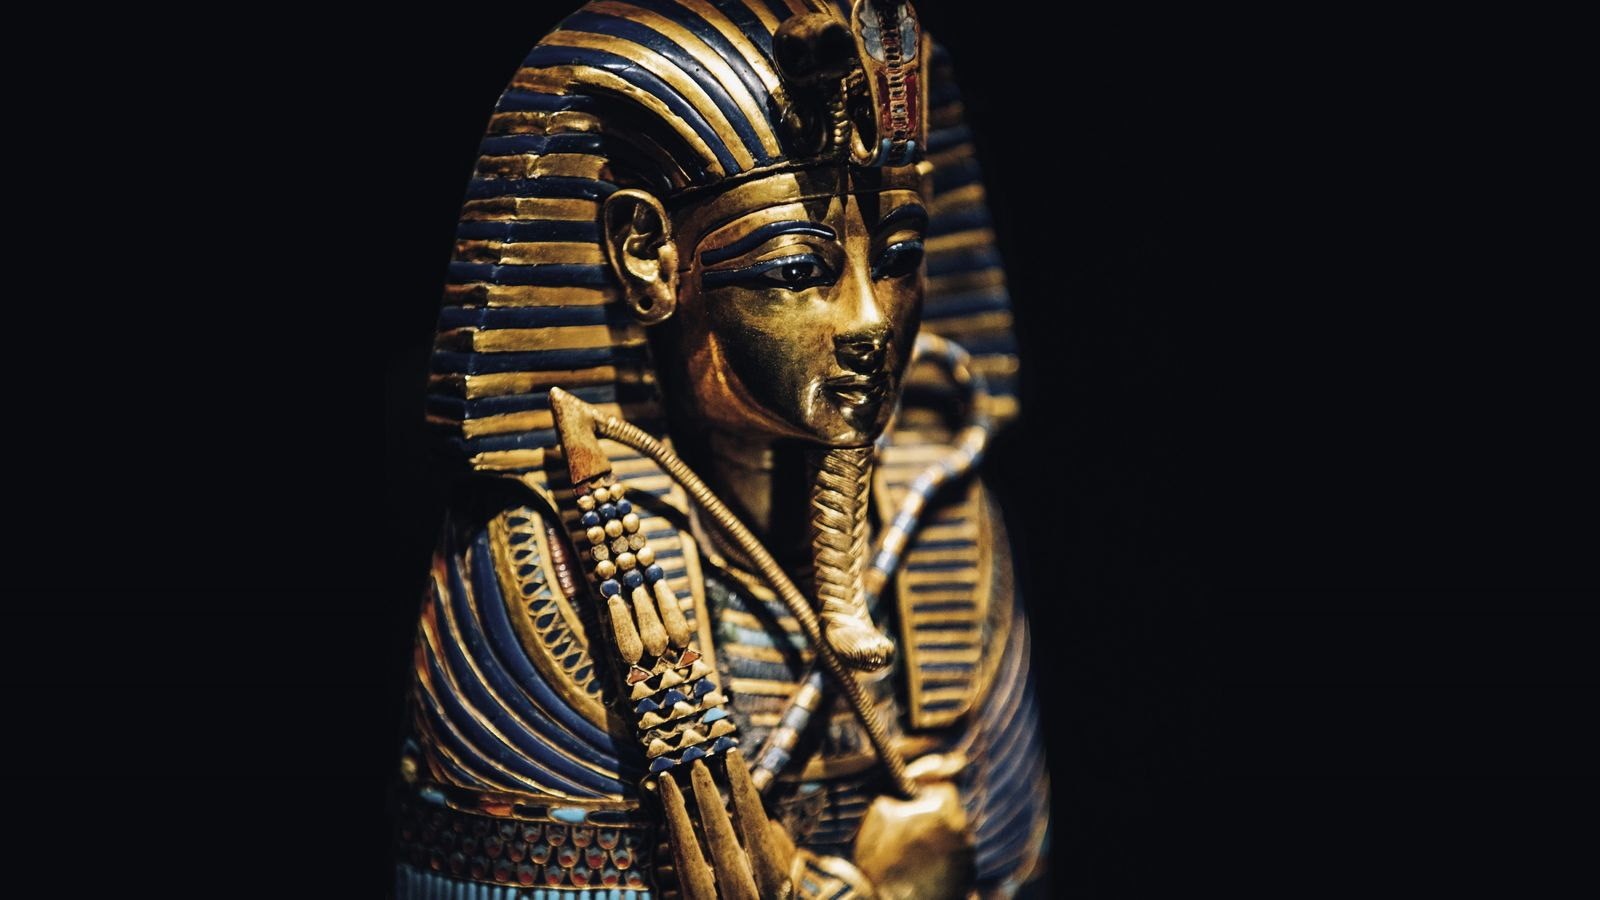 The Canopic Coffinette of Tutankhamun, one of the 150 ancient marvels featuring in the upcoming Tutankhamun: ...